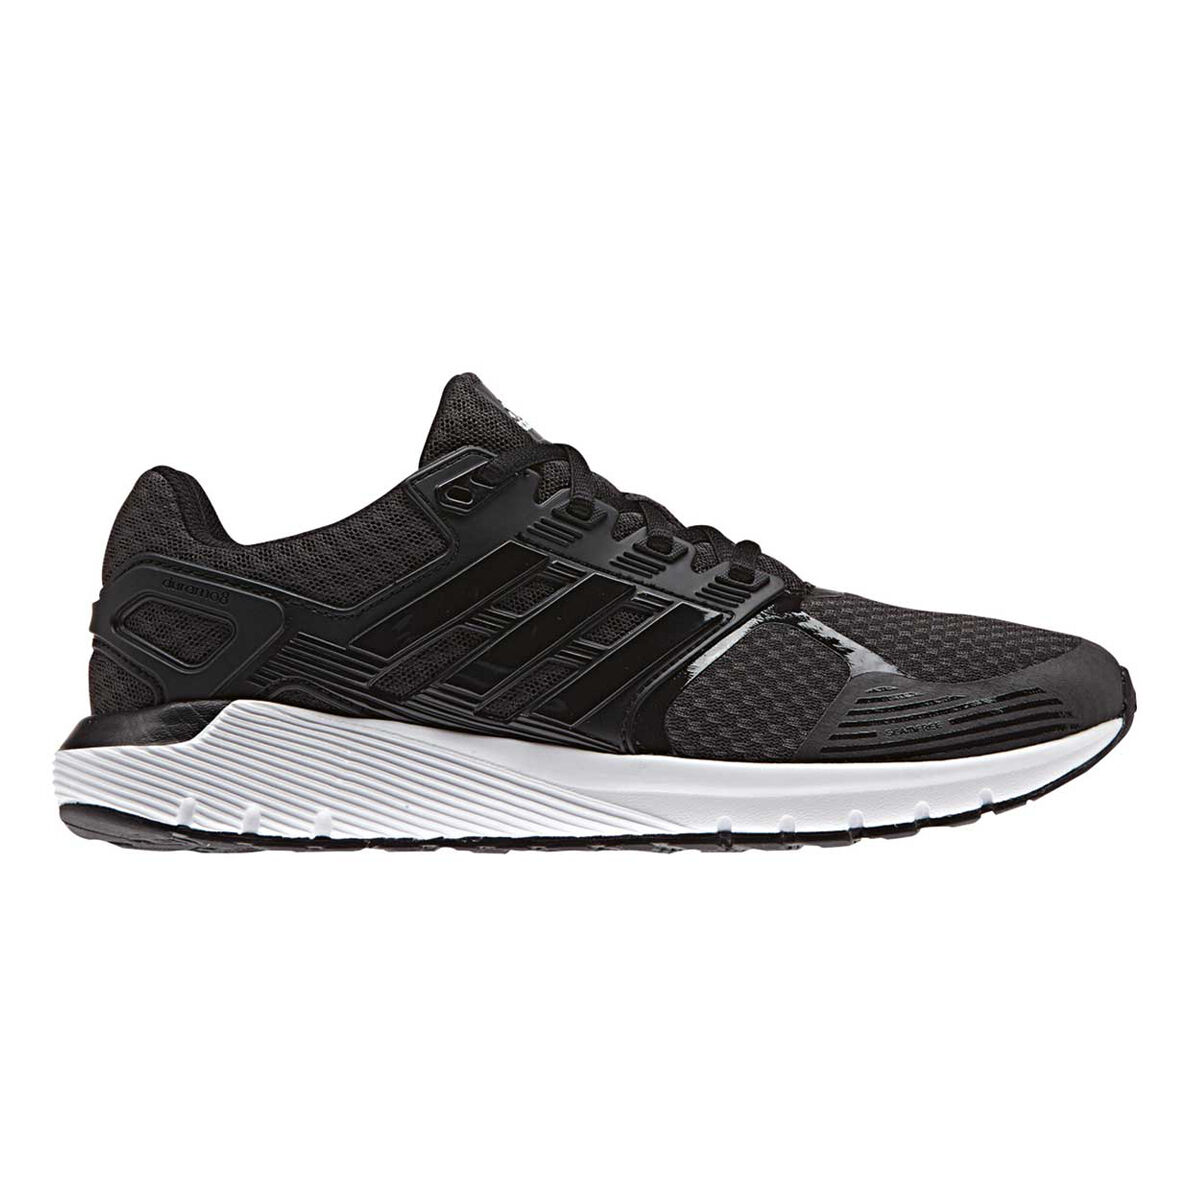 Adidas 6Rebel Sport 8 Shoes Womens Black Duramo Us Running 0k8PNnZwOX